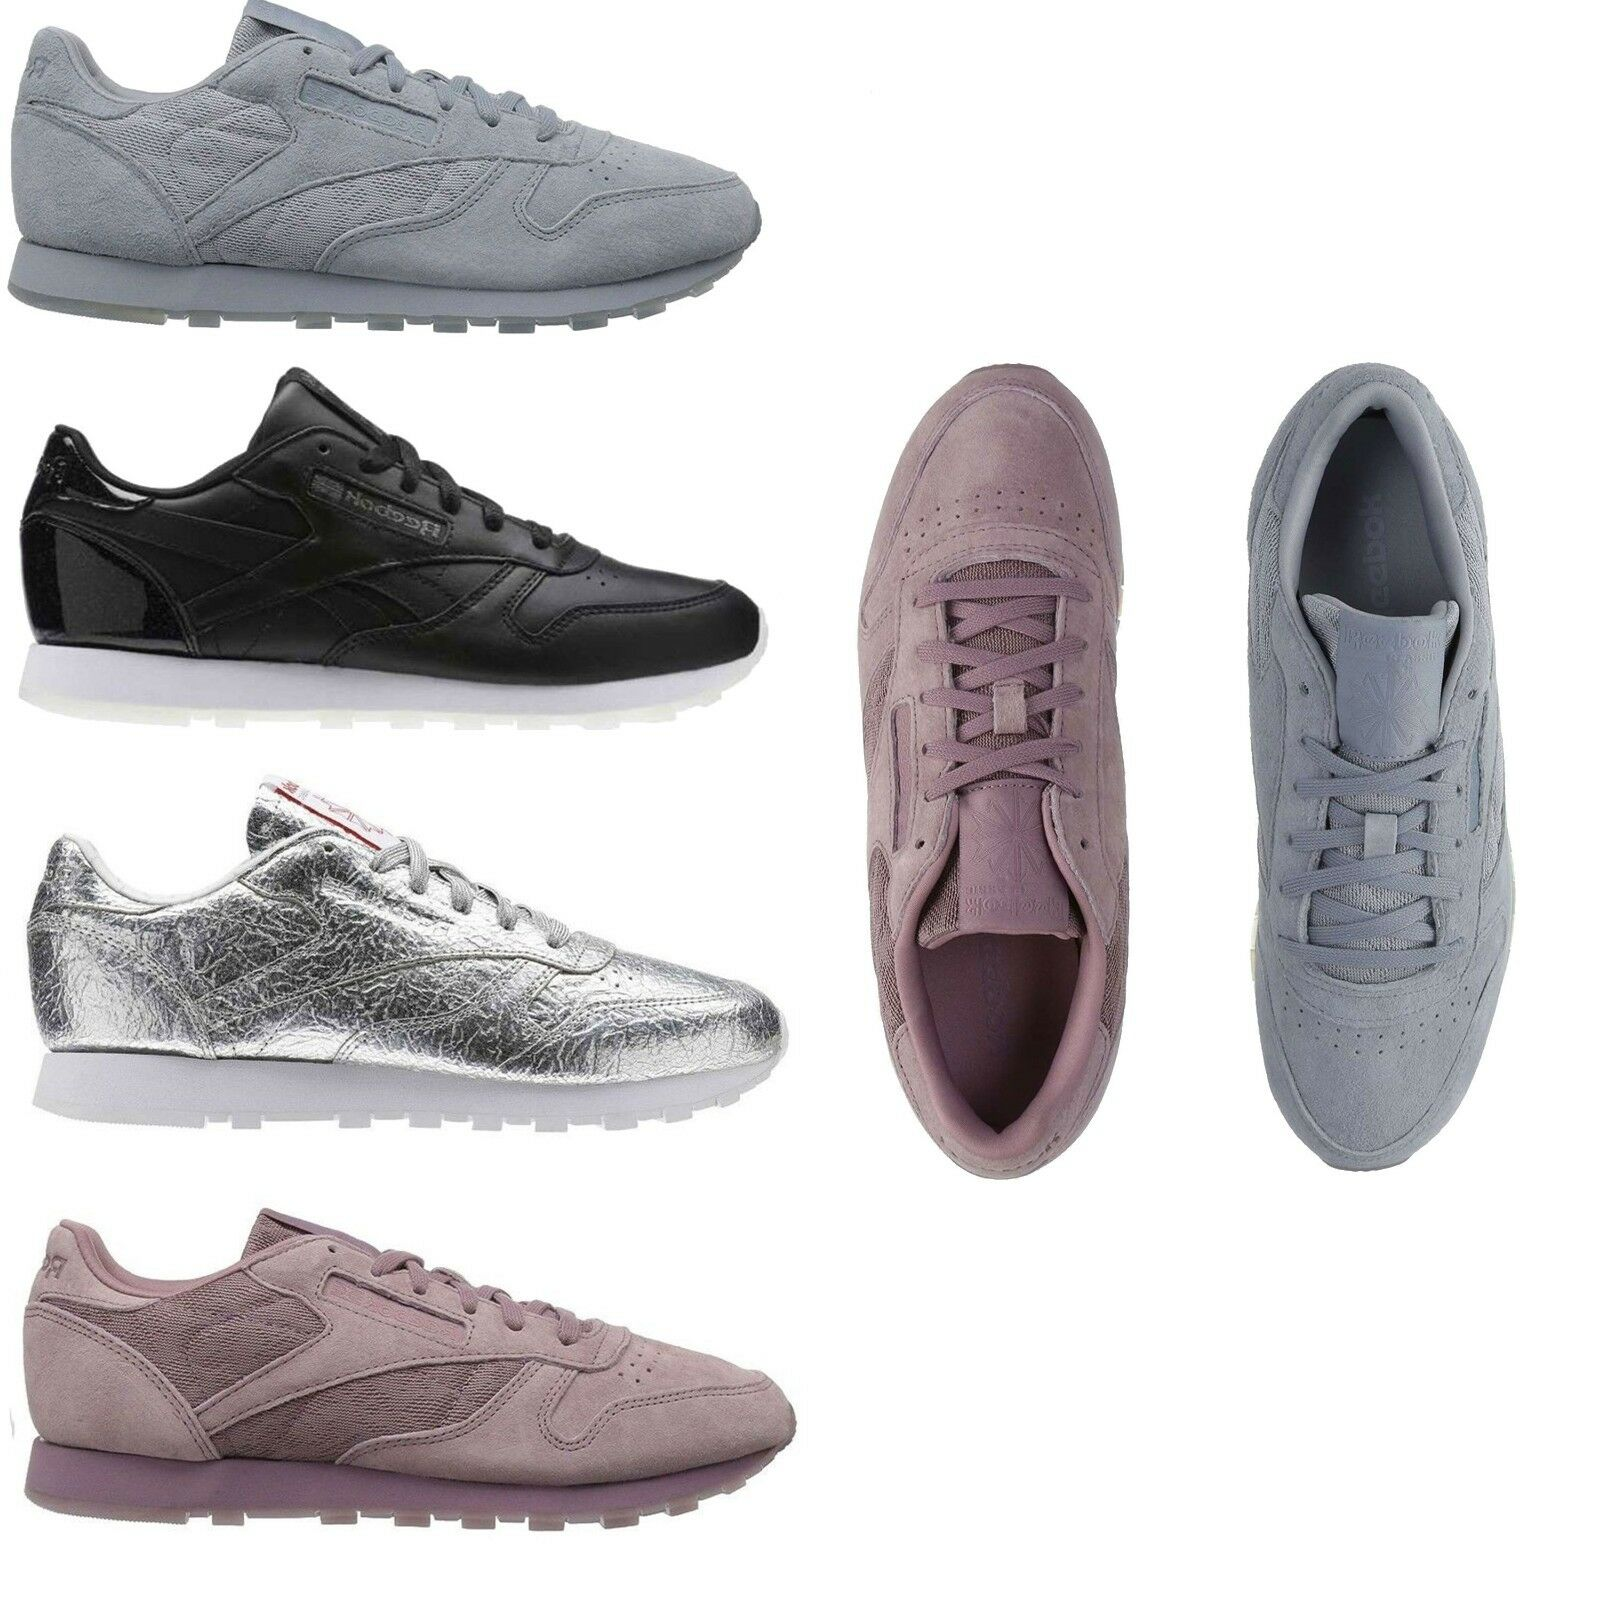 Reebok femmes  NEW Classics Leather/Suede Lace Up Sneakers Retro Casual  Chaussures